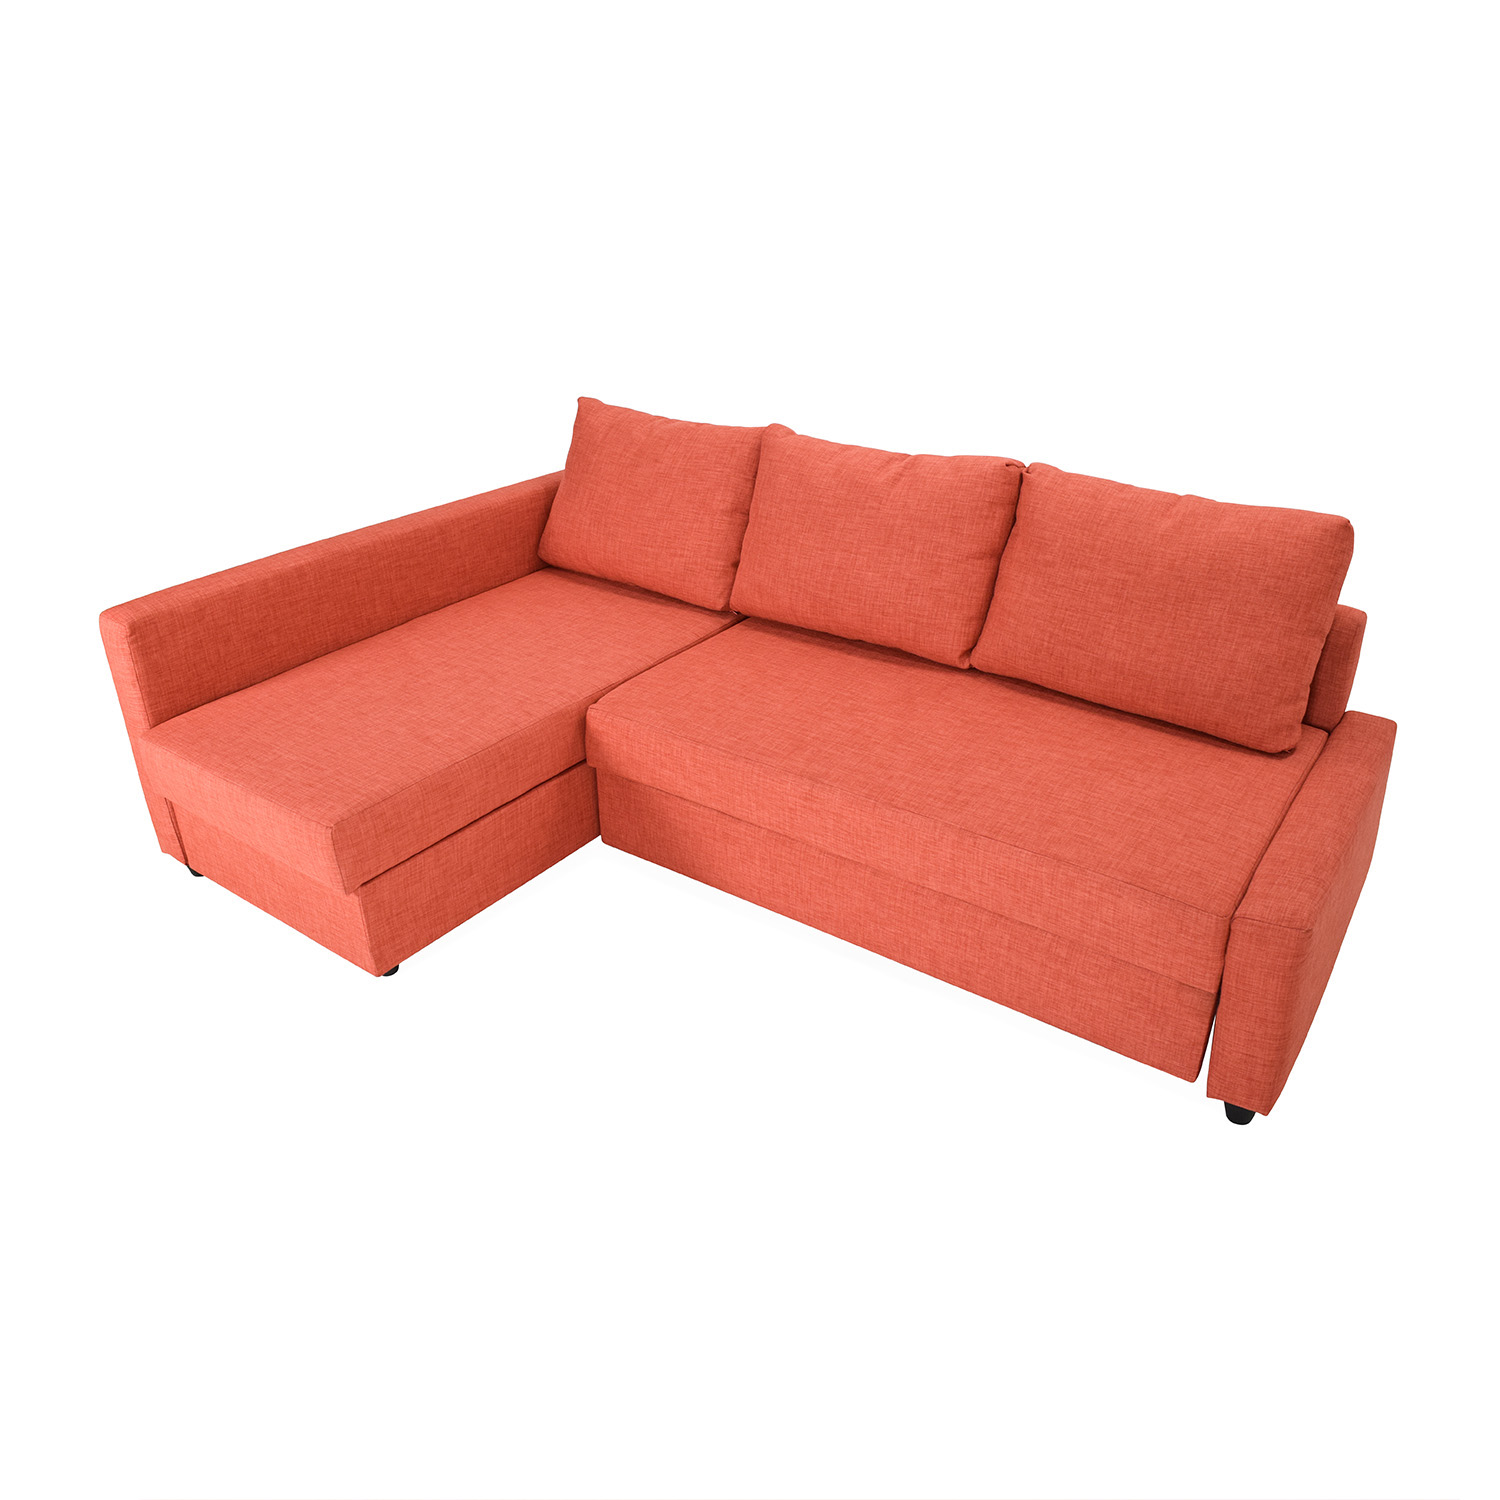 49 off ikea friheten sofa bed with chaise sofas for Chaise design ikea